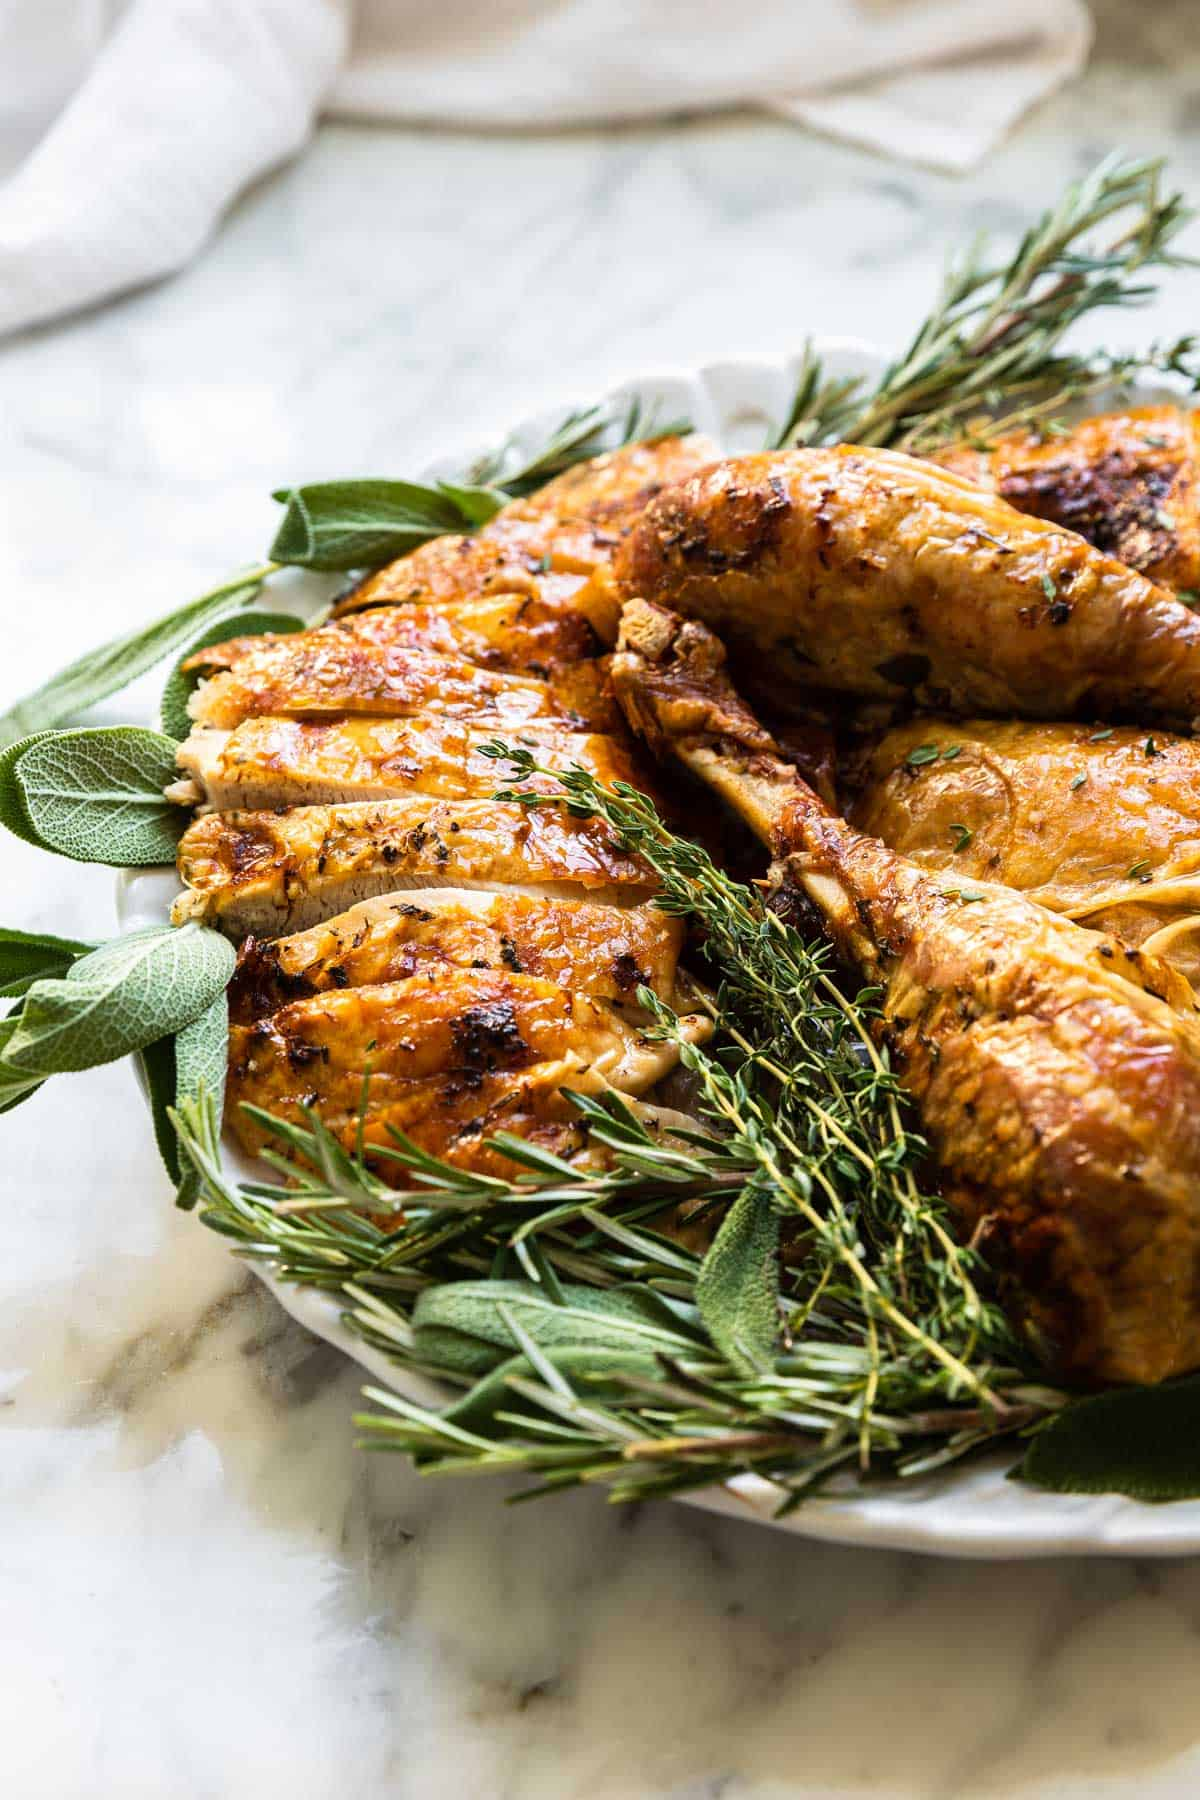 cut up pieces of sliced turkey surrounded by fresh herbs